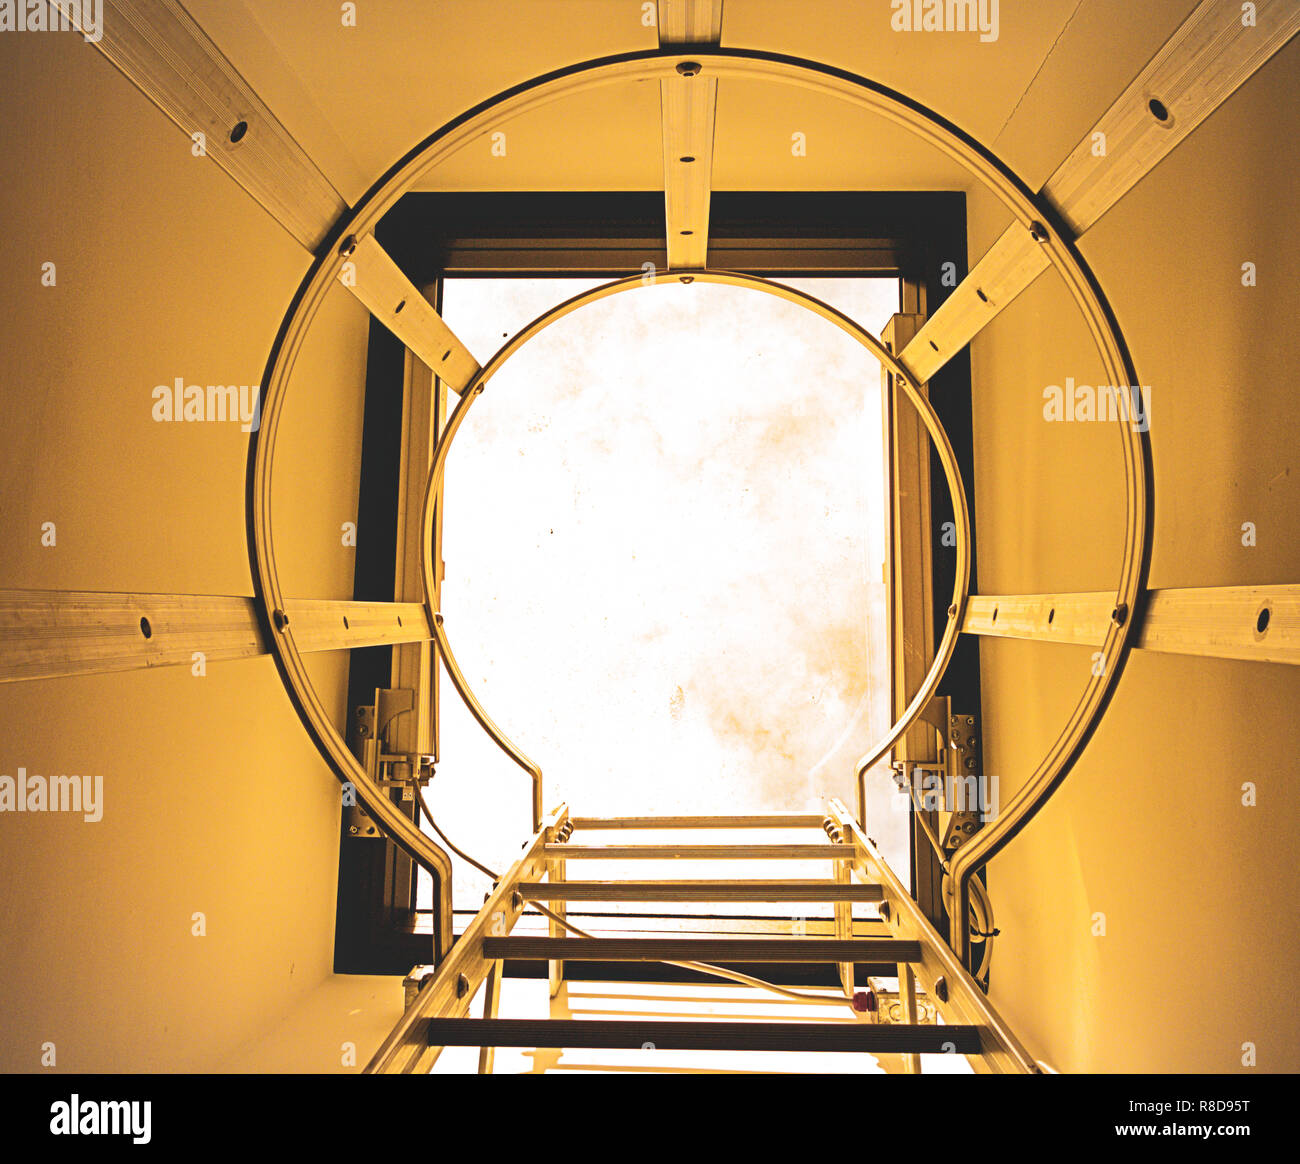 close-up-of-steel-ladder-up-to-a-skylight-roof-access-R8D95T.jpg